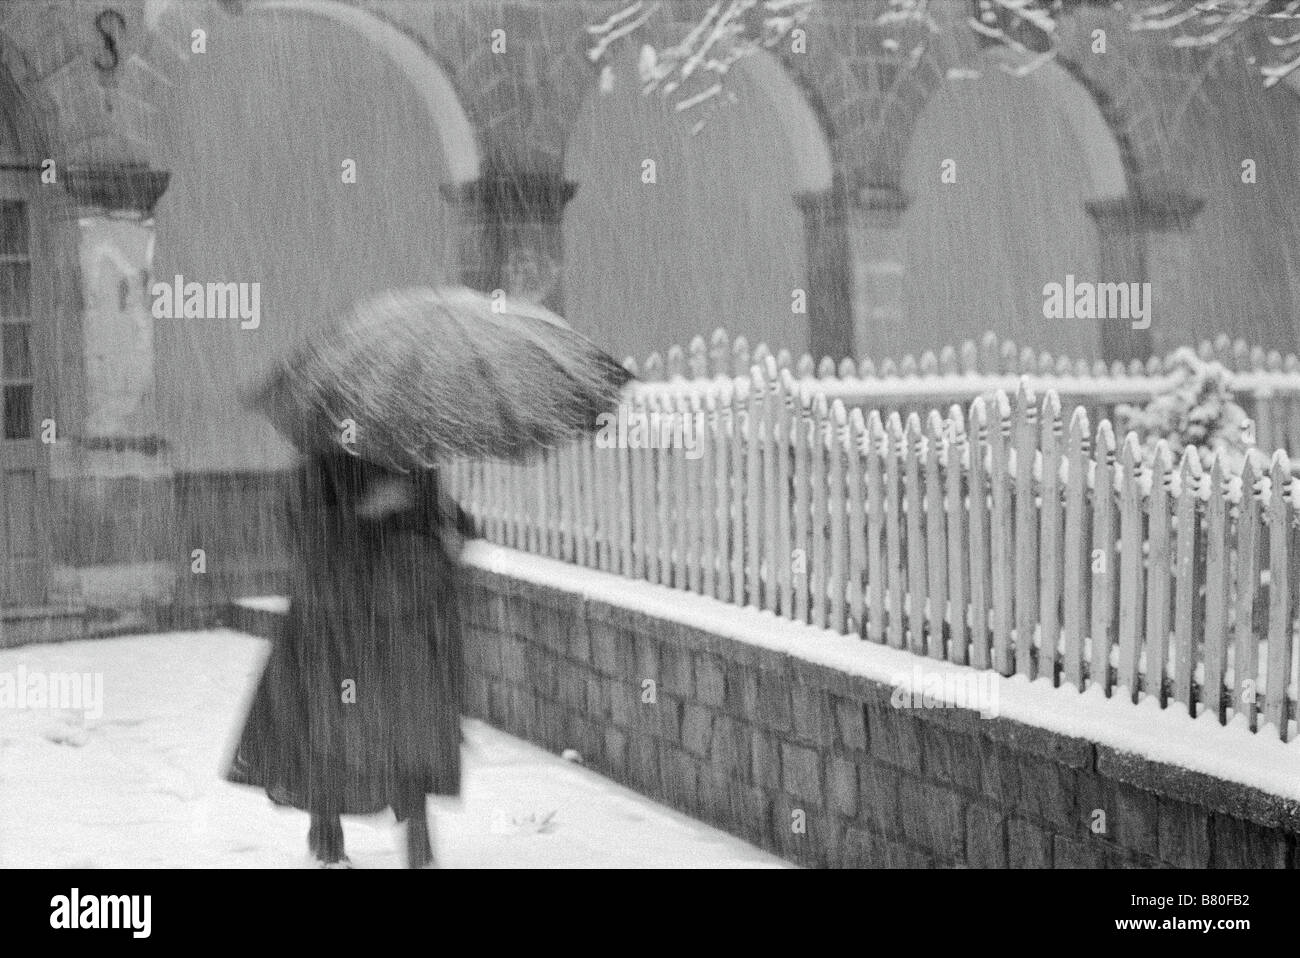 Black & white photograph of a woman walking along a fence in a wet snowstorm, carrying an umbrella. - Stock Image